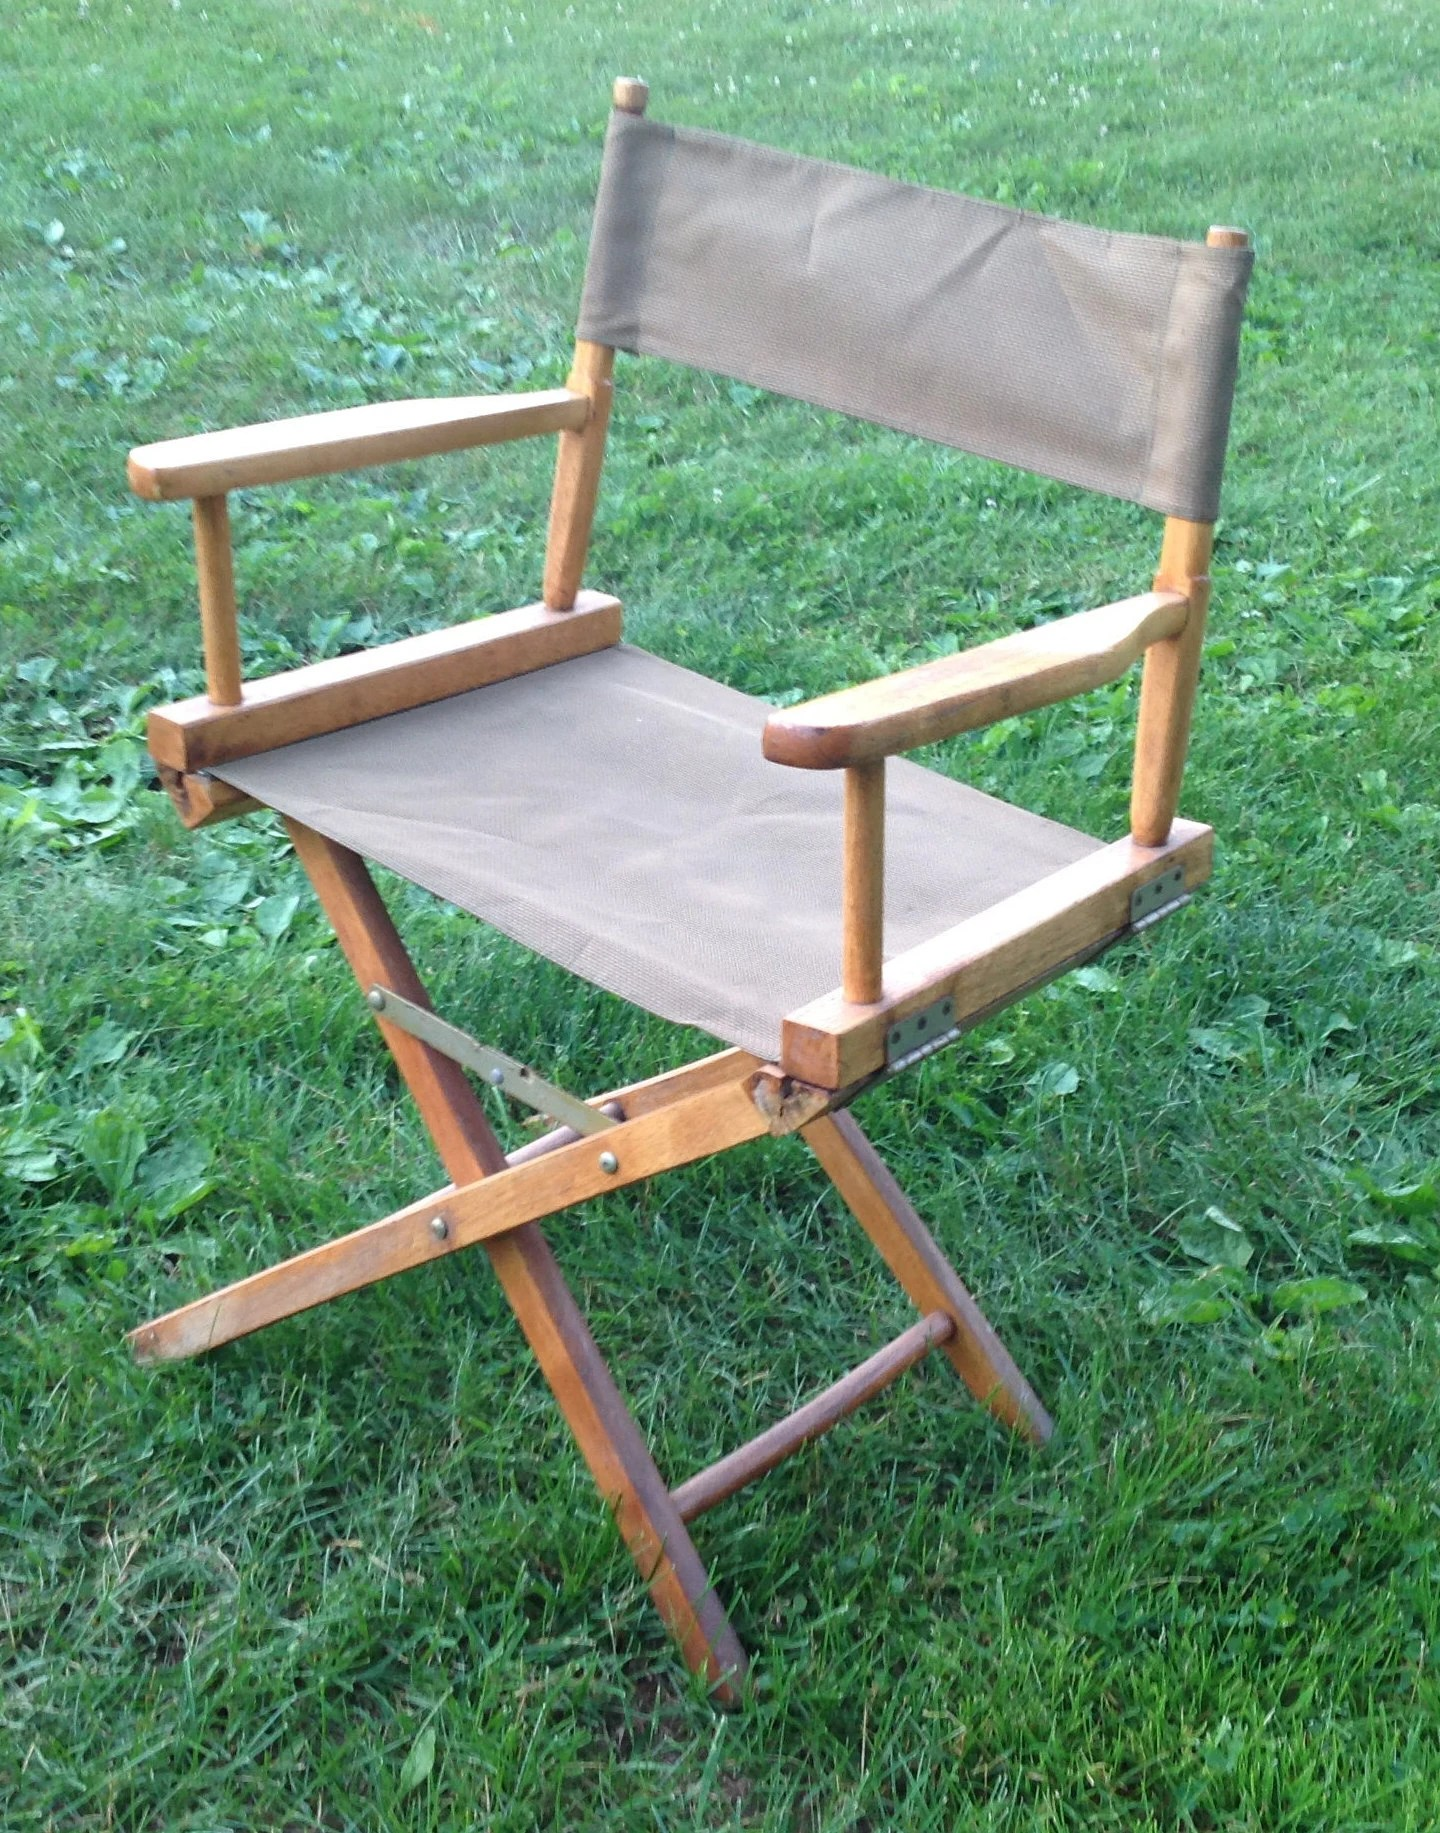 Collapsible Chair Collapsible Director S Chair Vintage Collapsible Chair Folding Chair Wood And Fabric Chair Camping Chair Camping Gear Studio Chair